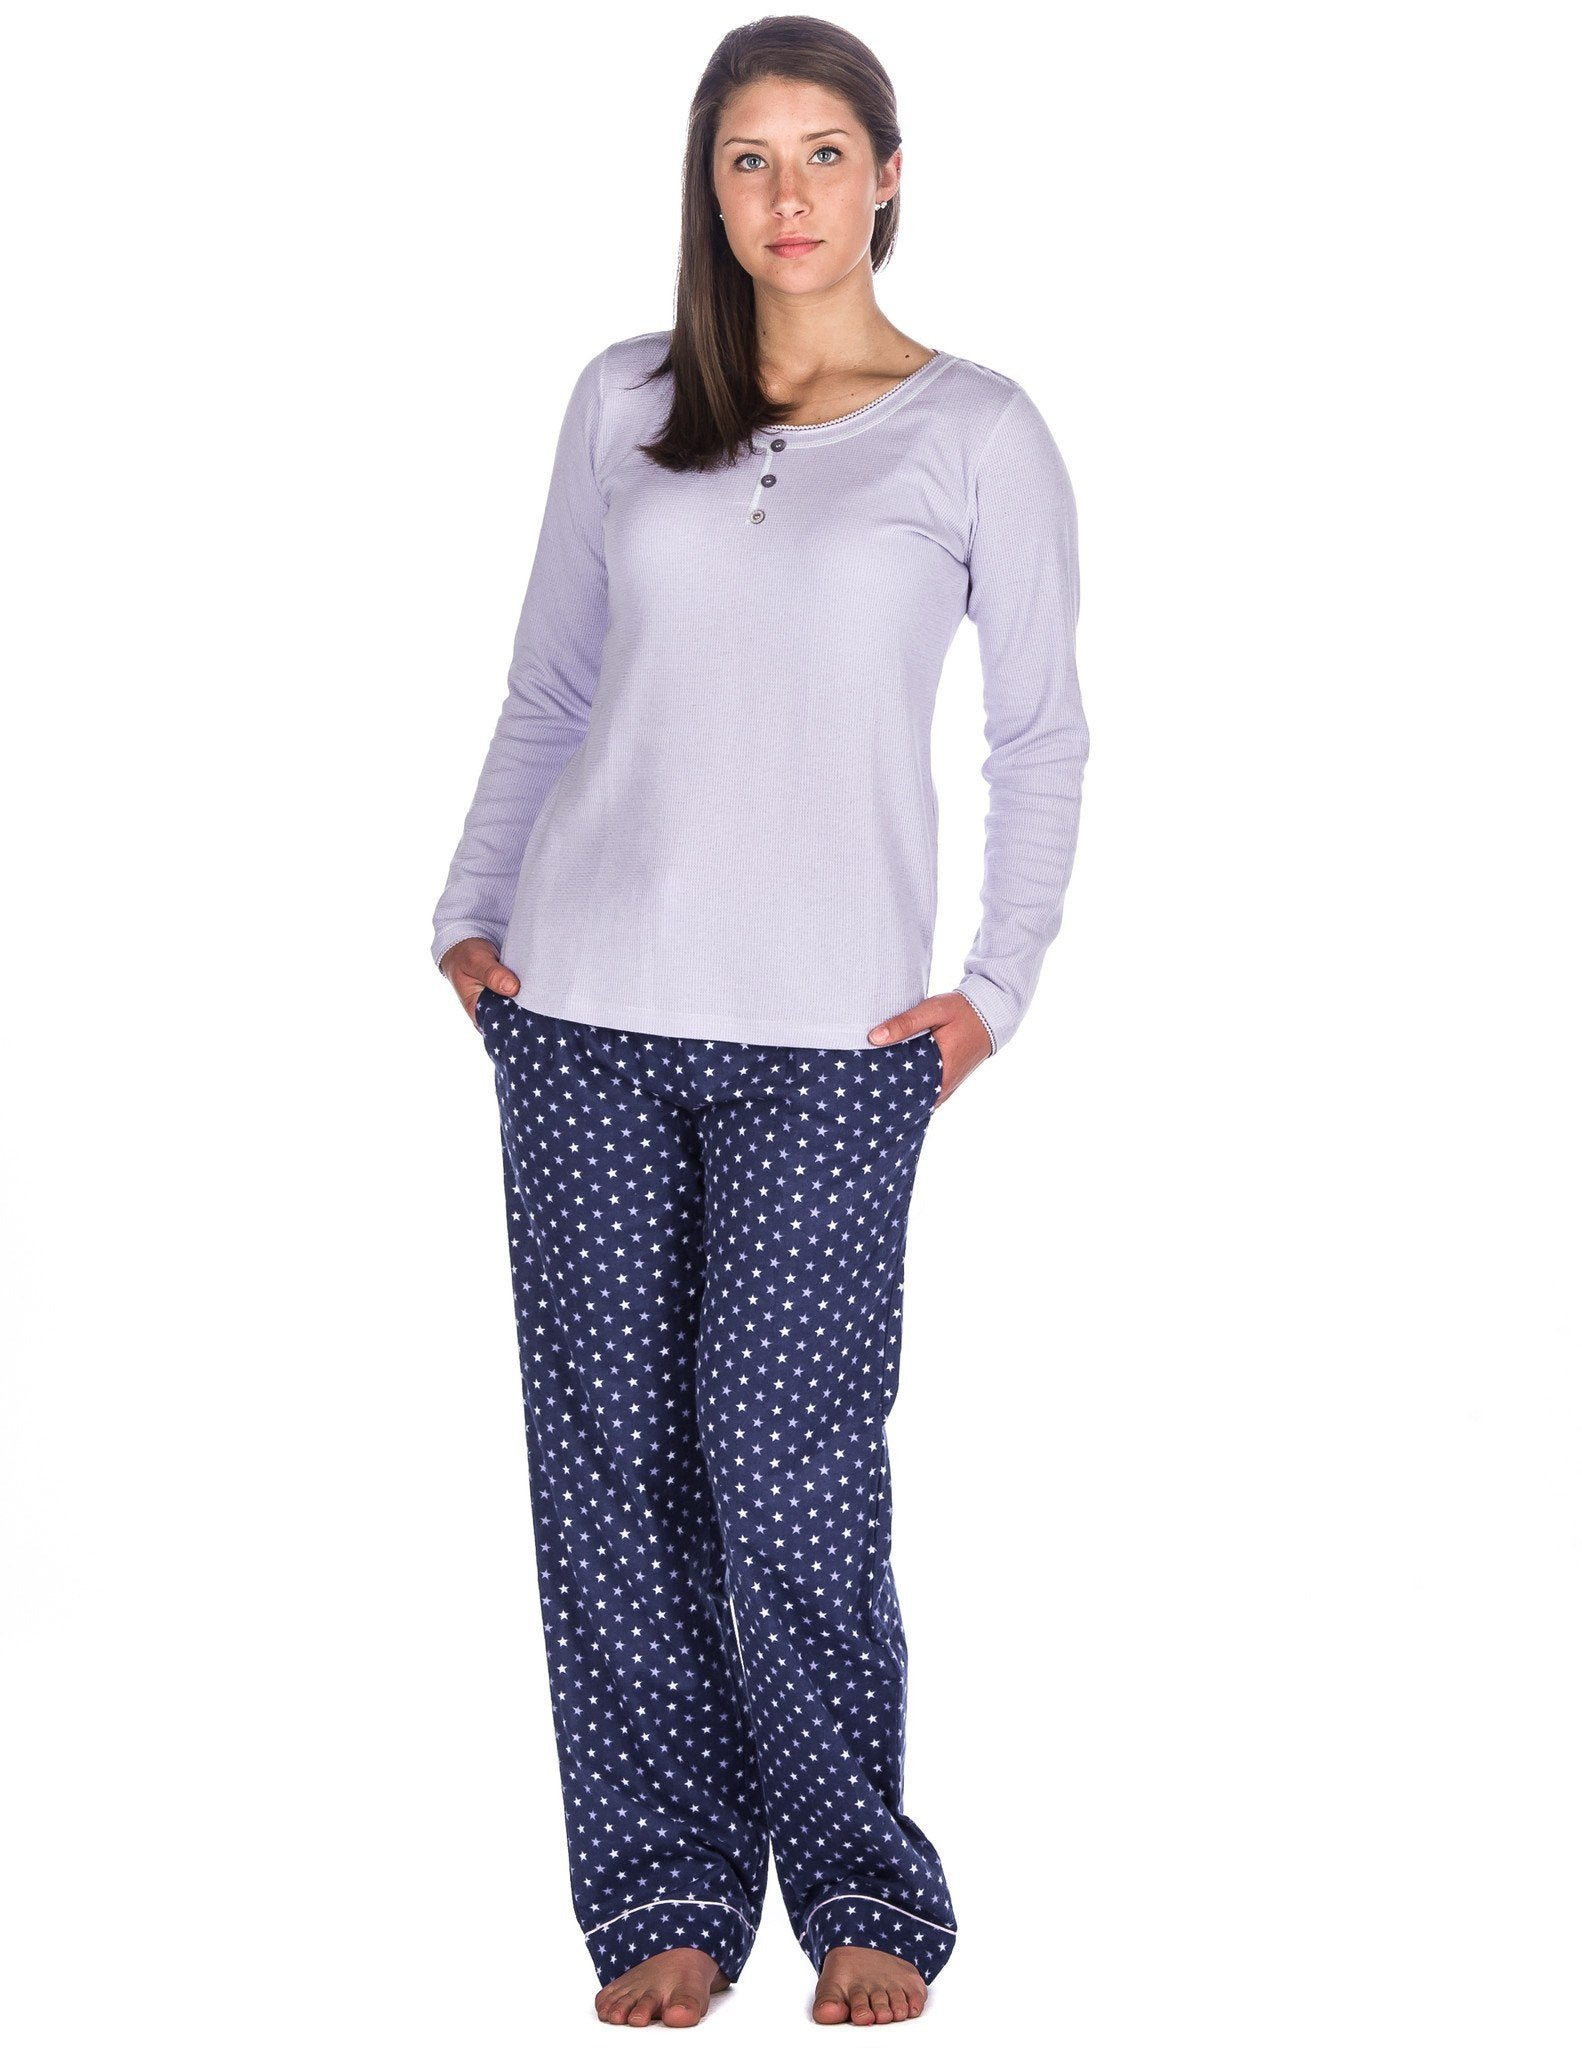 Relaxed Fit Womens Cotton Flannel Lounge Set with Crew Neck Top - Stars Blue